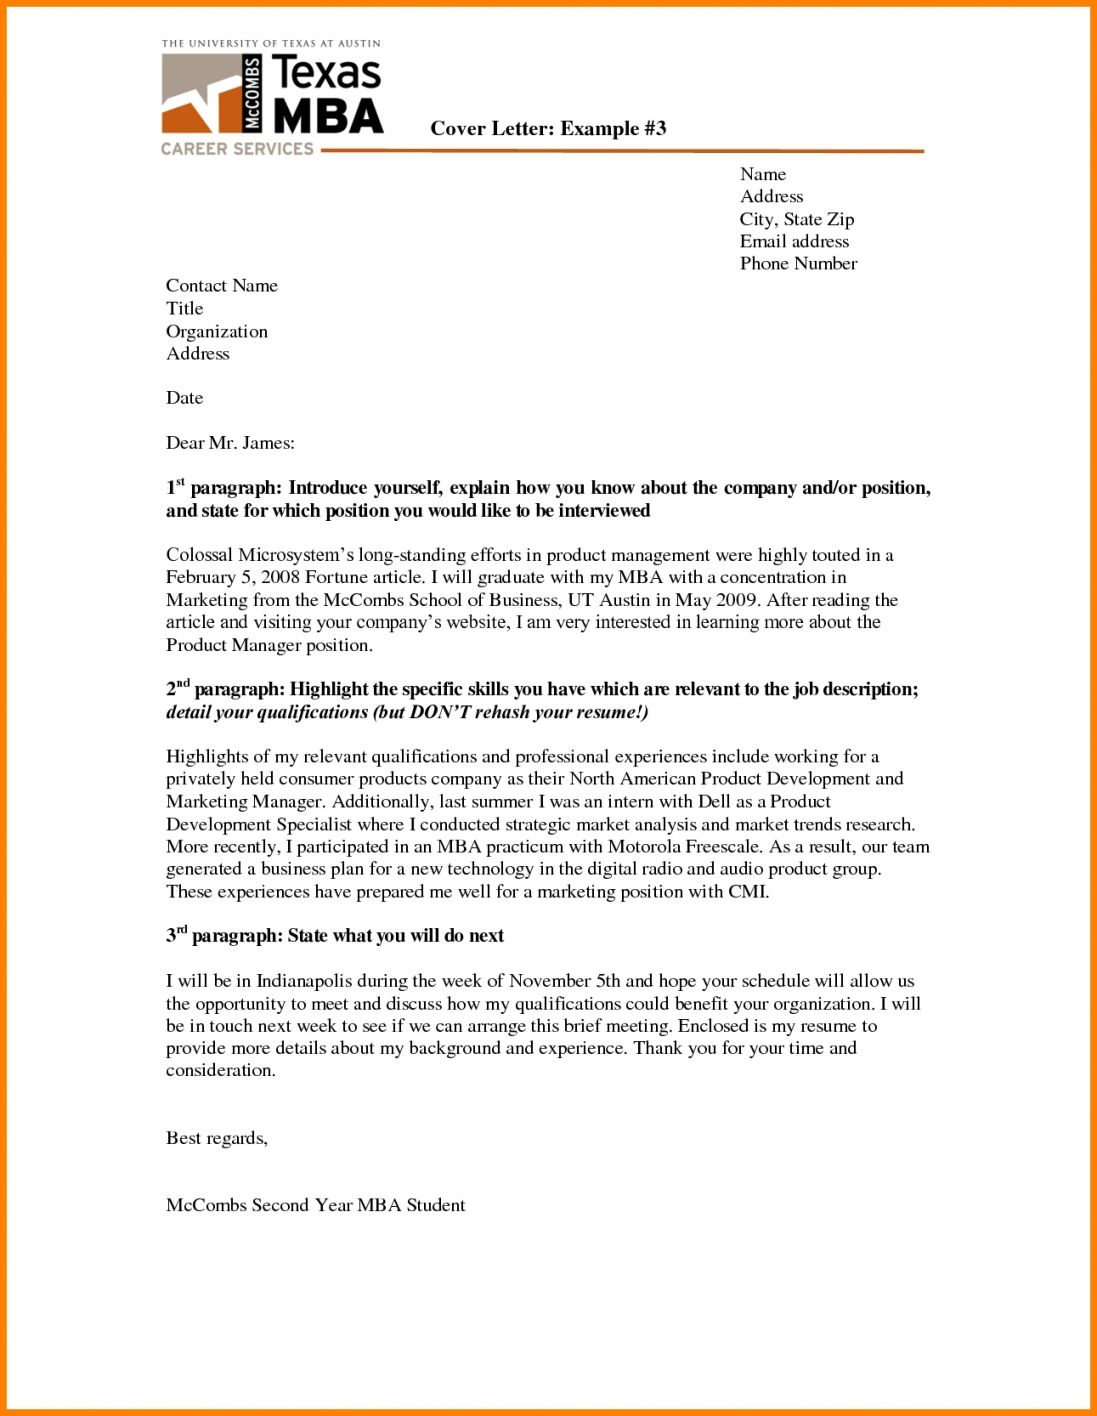 3 Paragraph Cover Letter Template Cover Letter Template